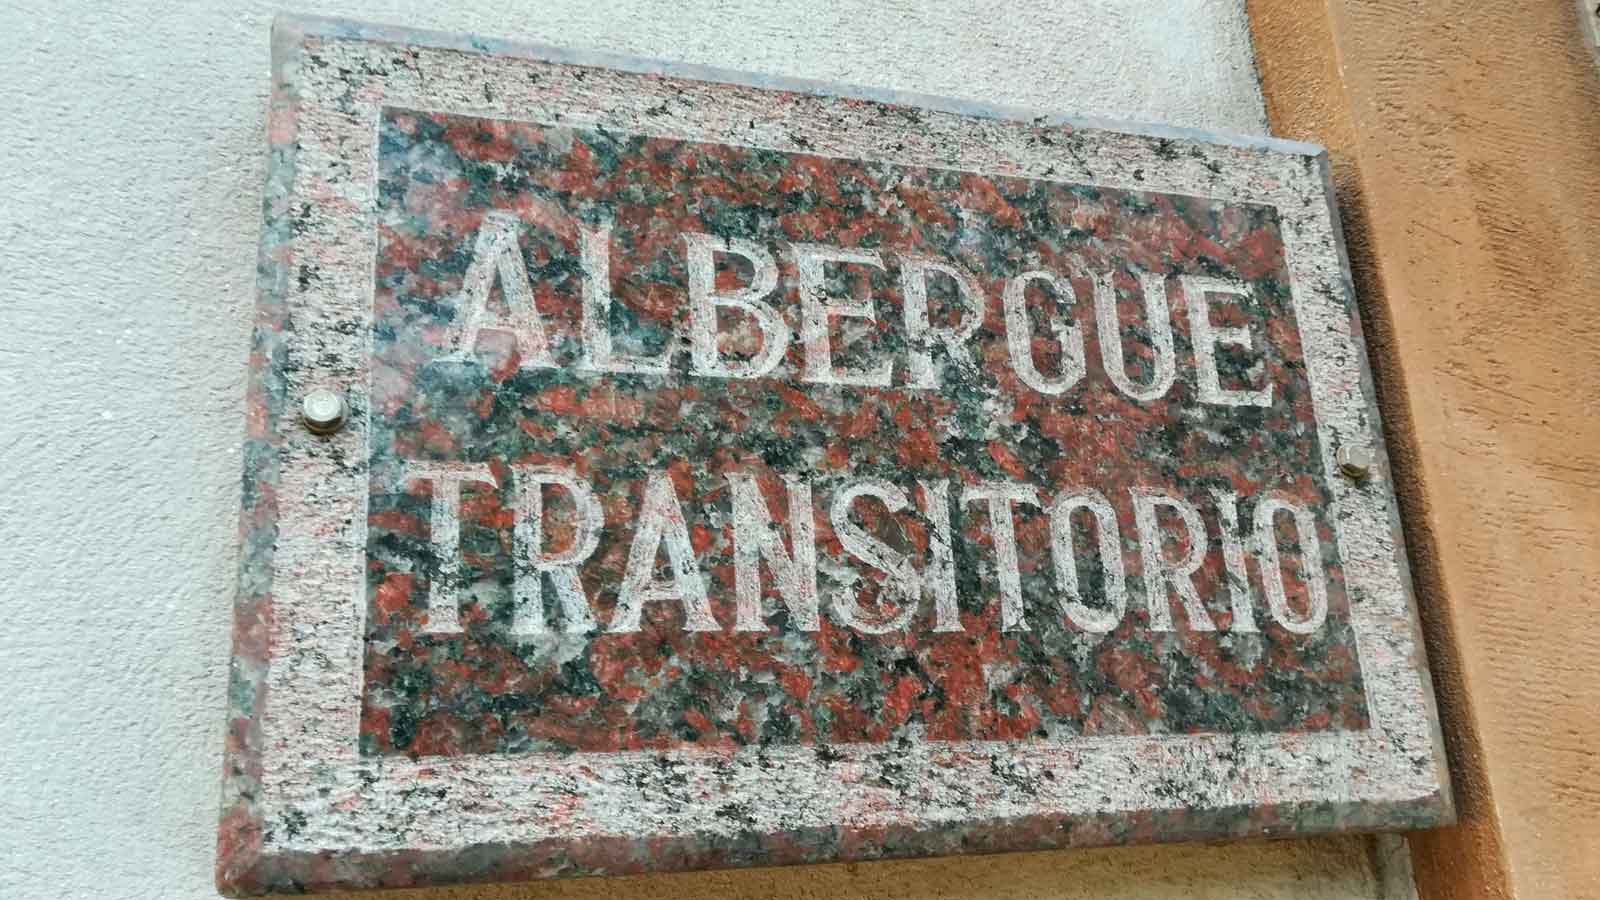 Cartel de albergue transitorio